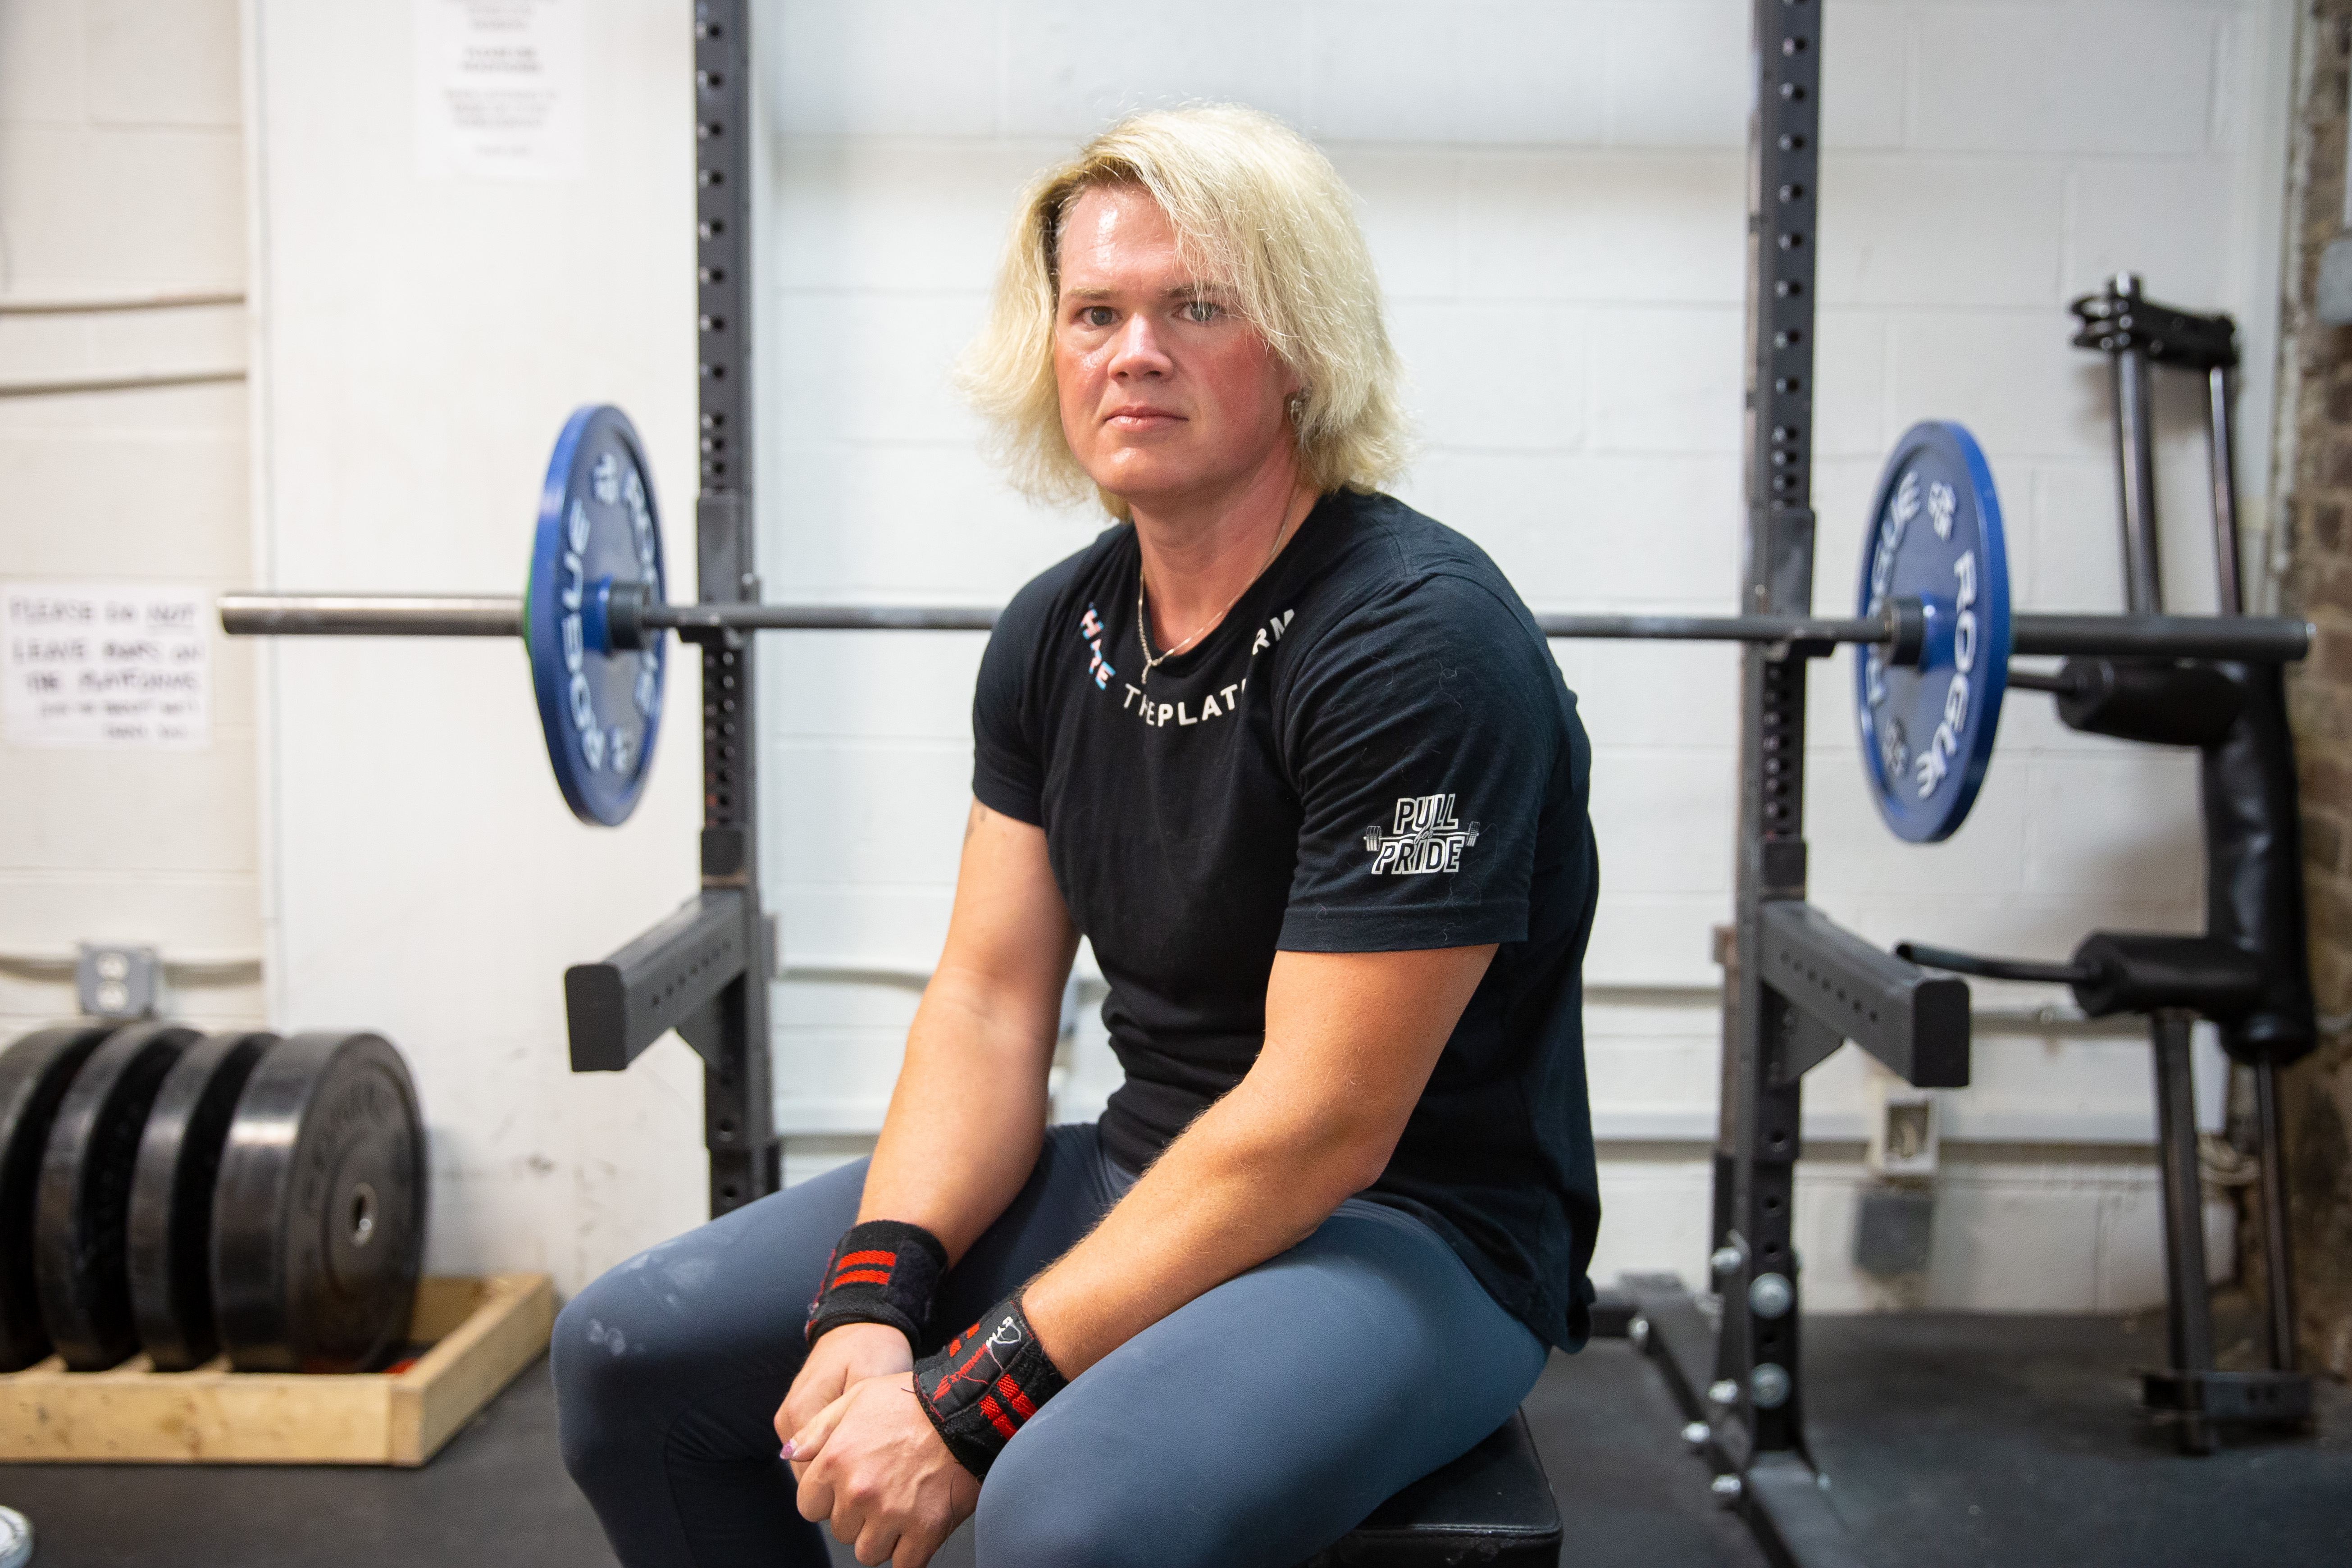 Transgender powerlifter Mary Gregory stripped of world